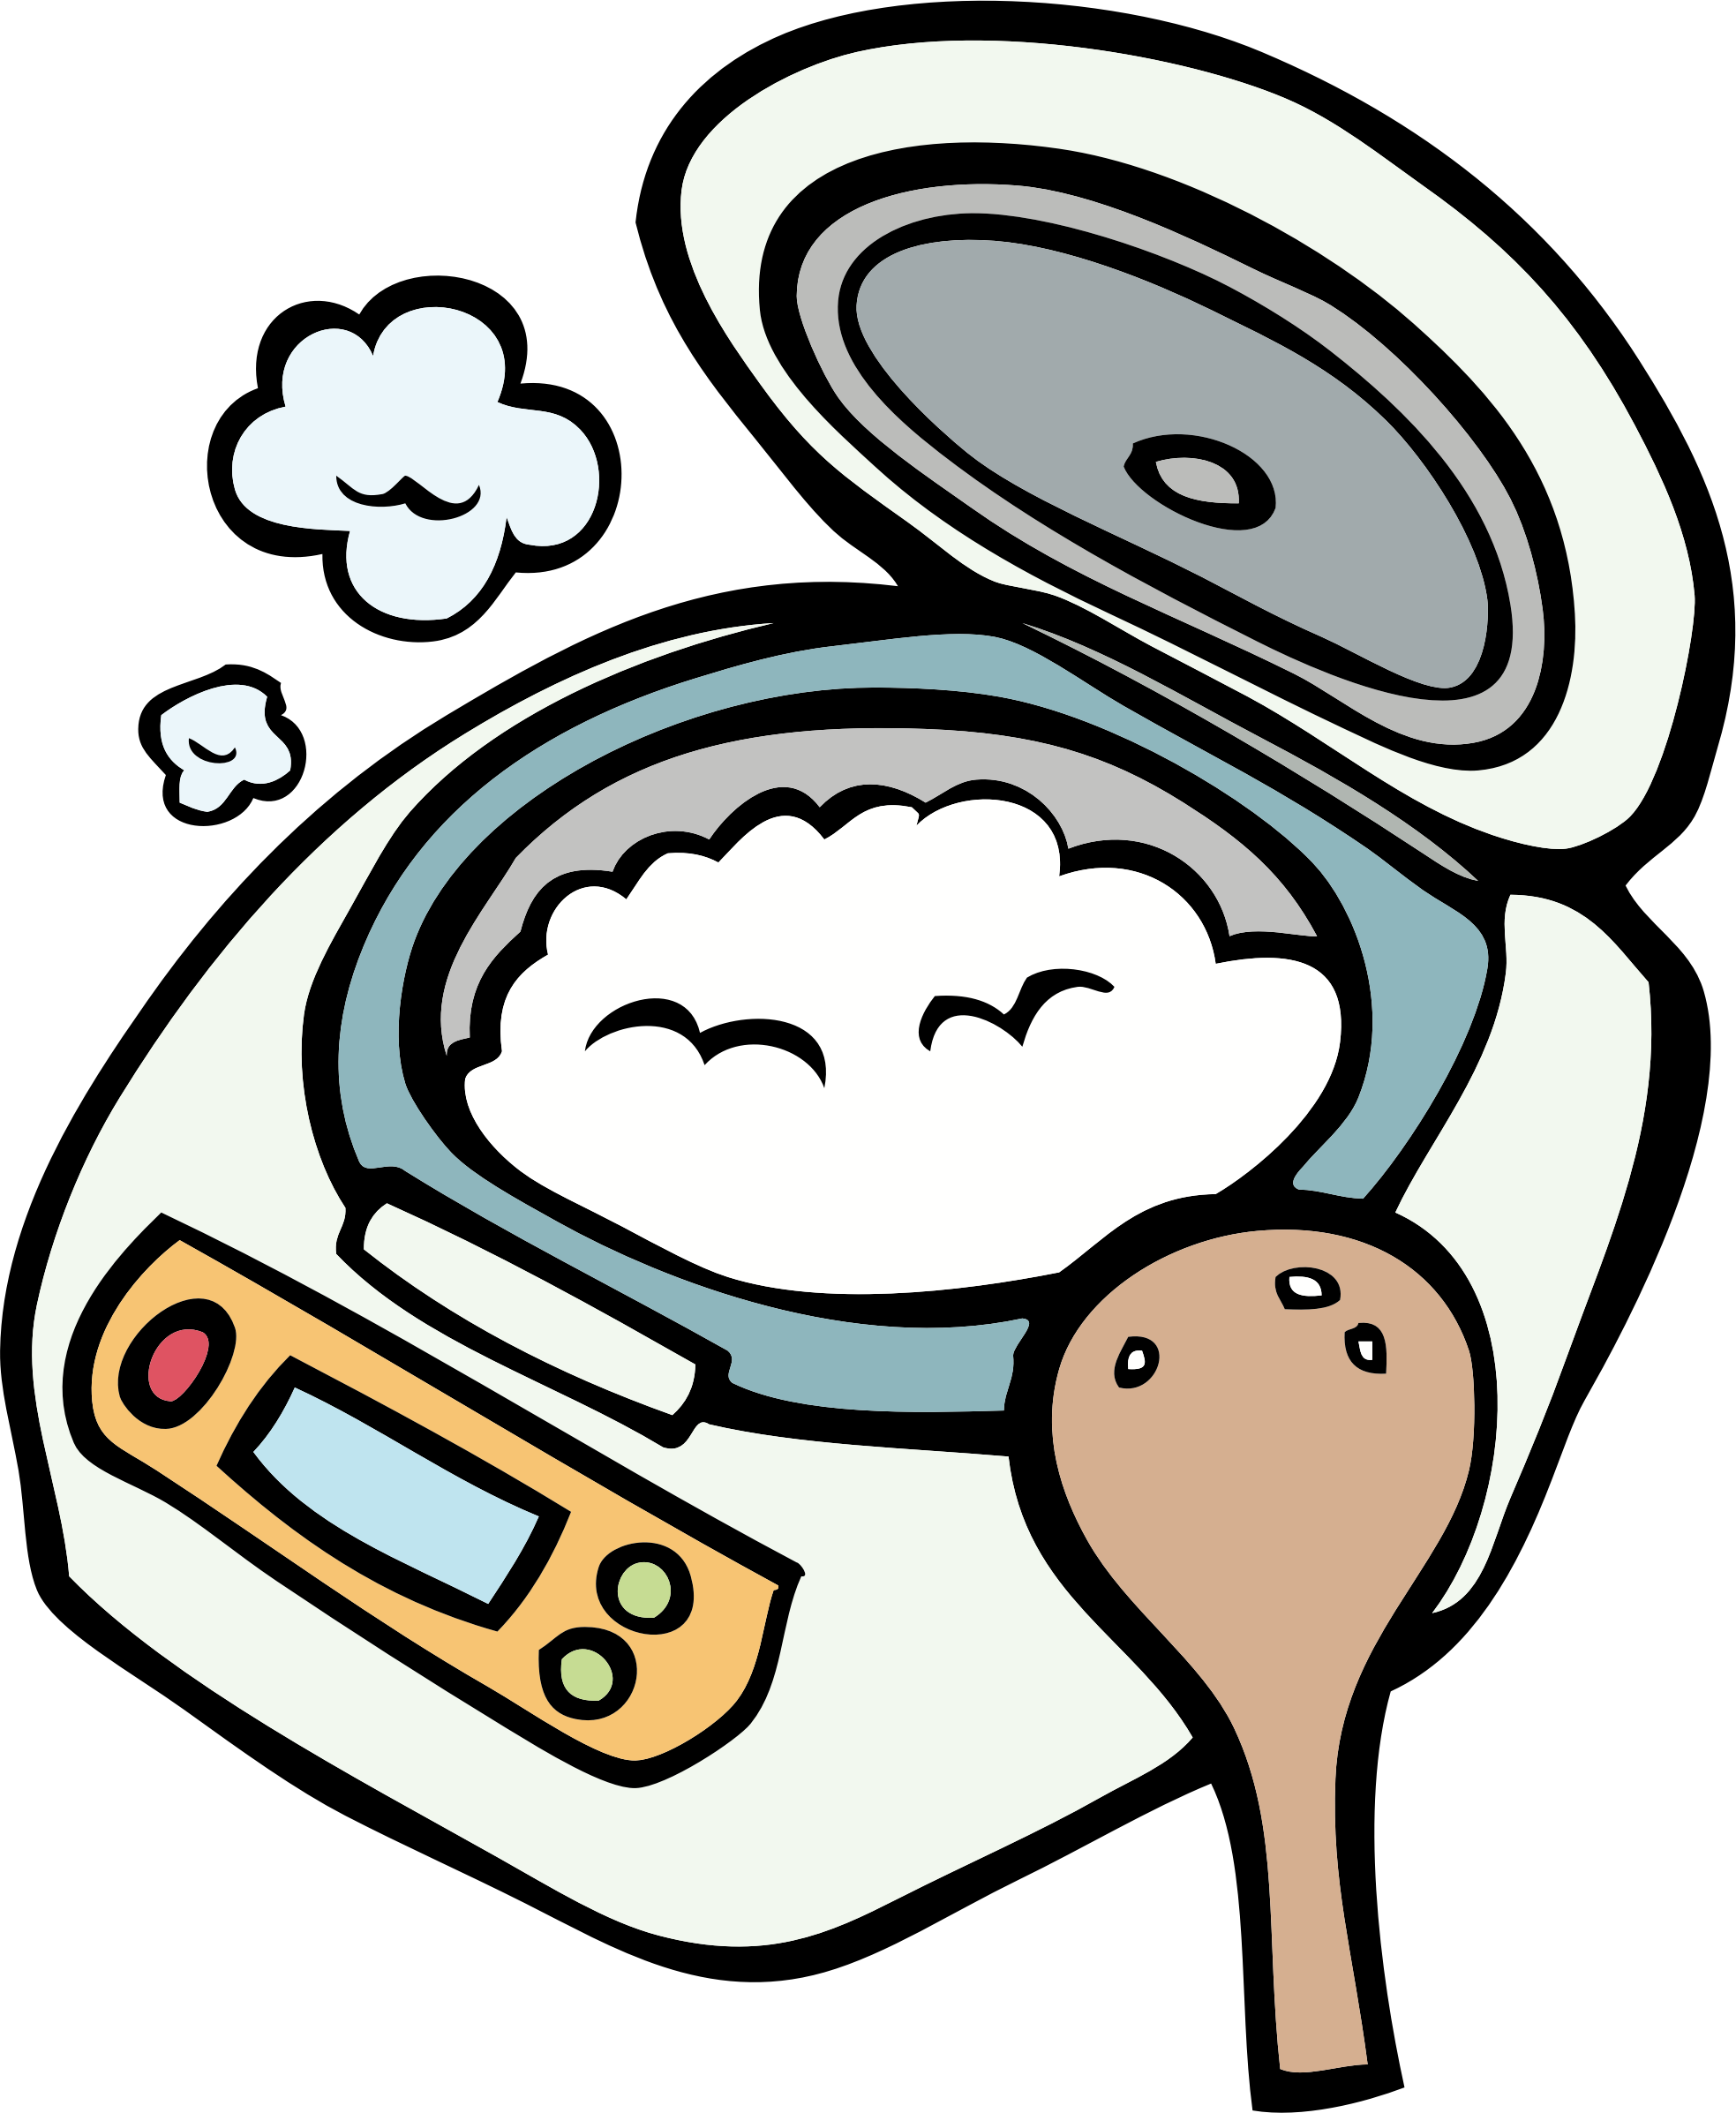 Rice Cooker by oksmith